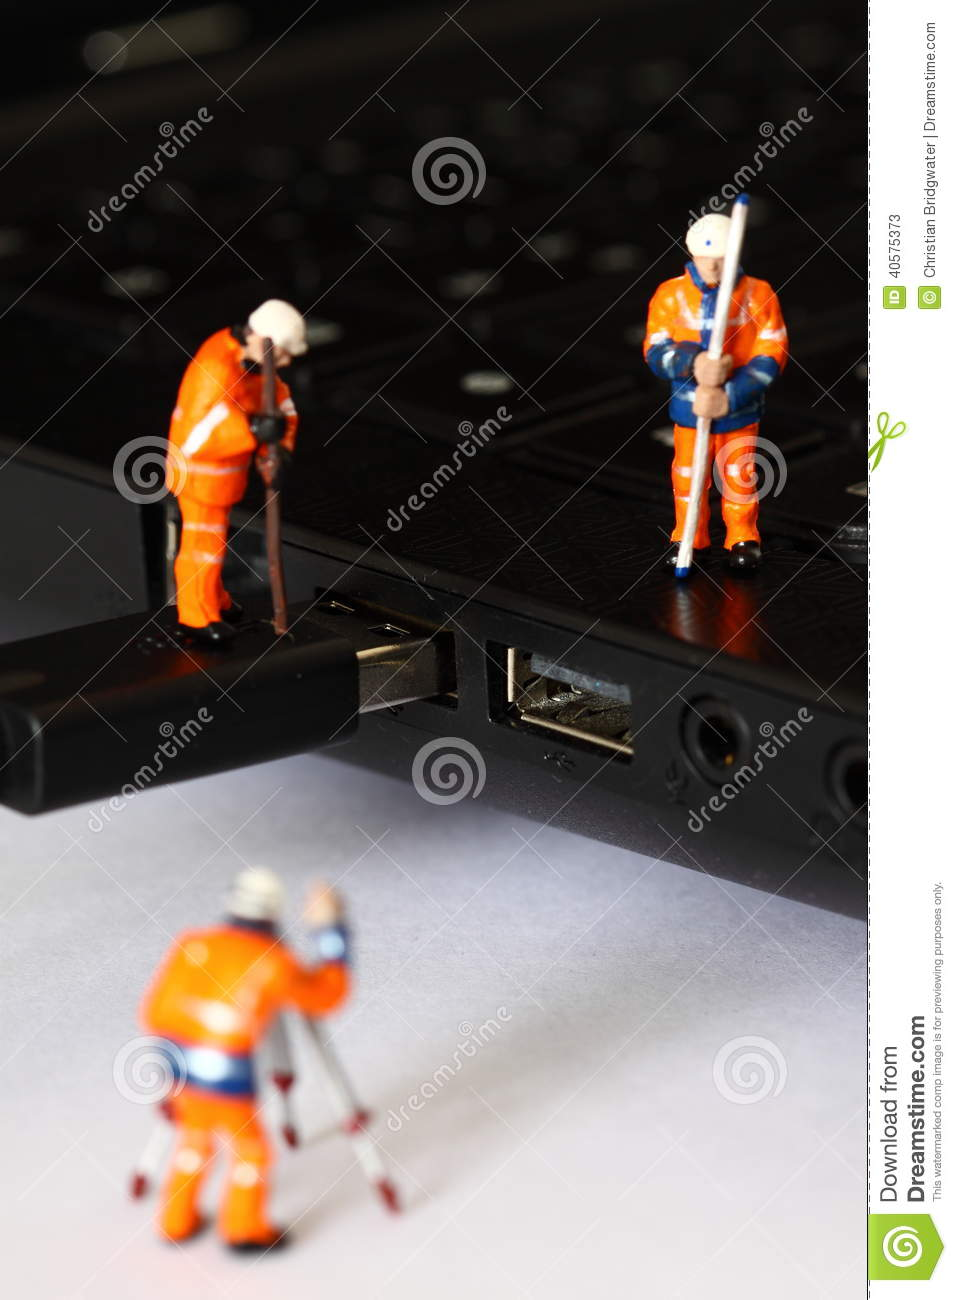 Construction model workers USB cable C